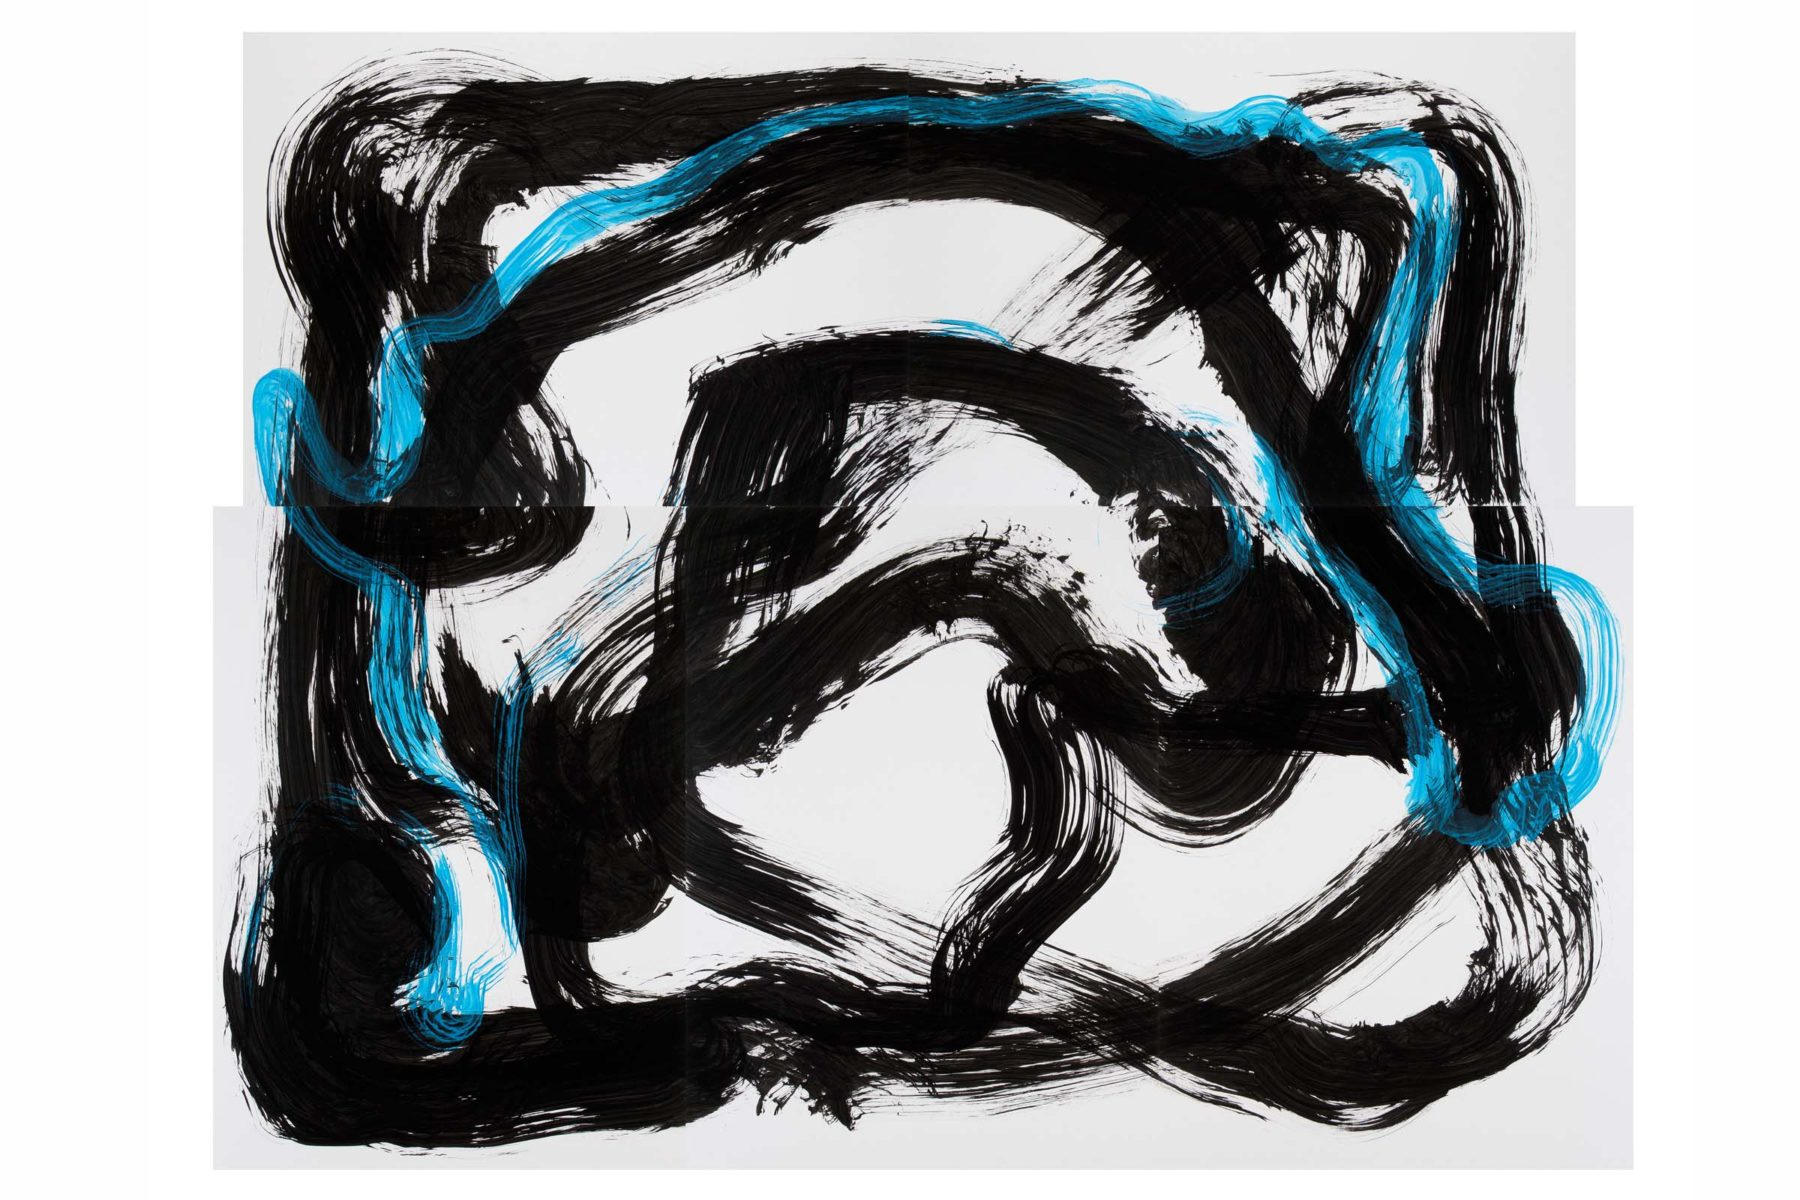 Matteo Fato, Untitle with rock, 2009, ink on paper, 219 x 175 cm